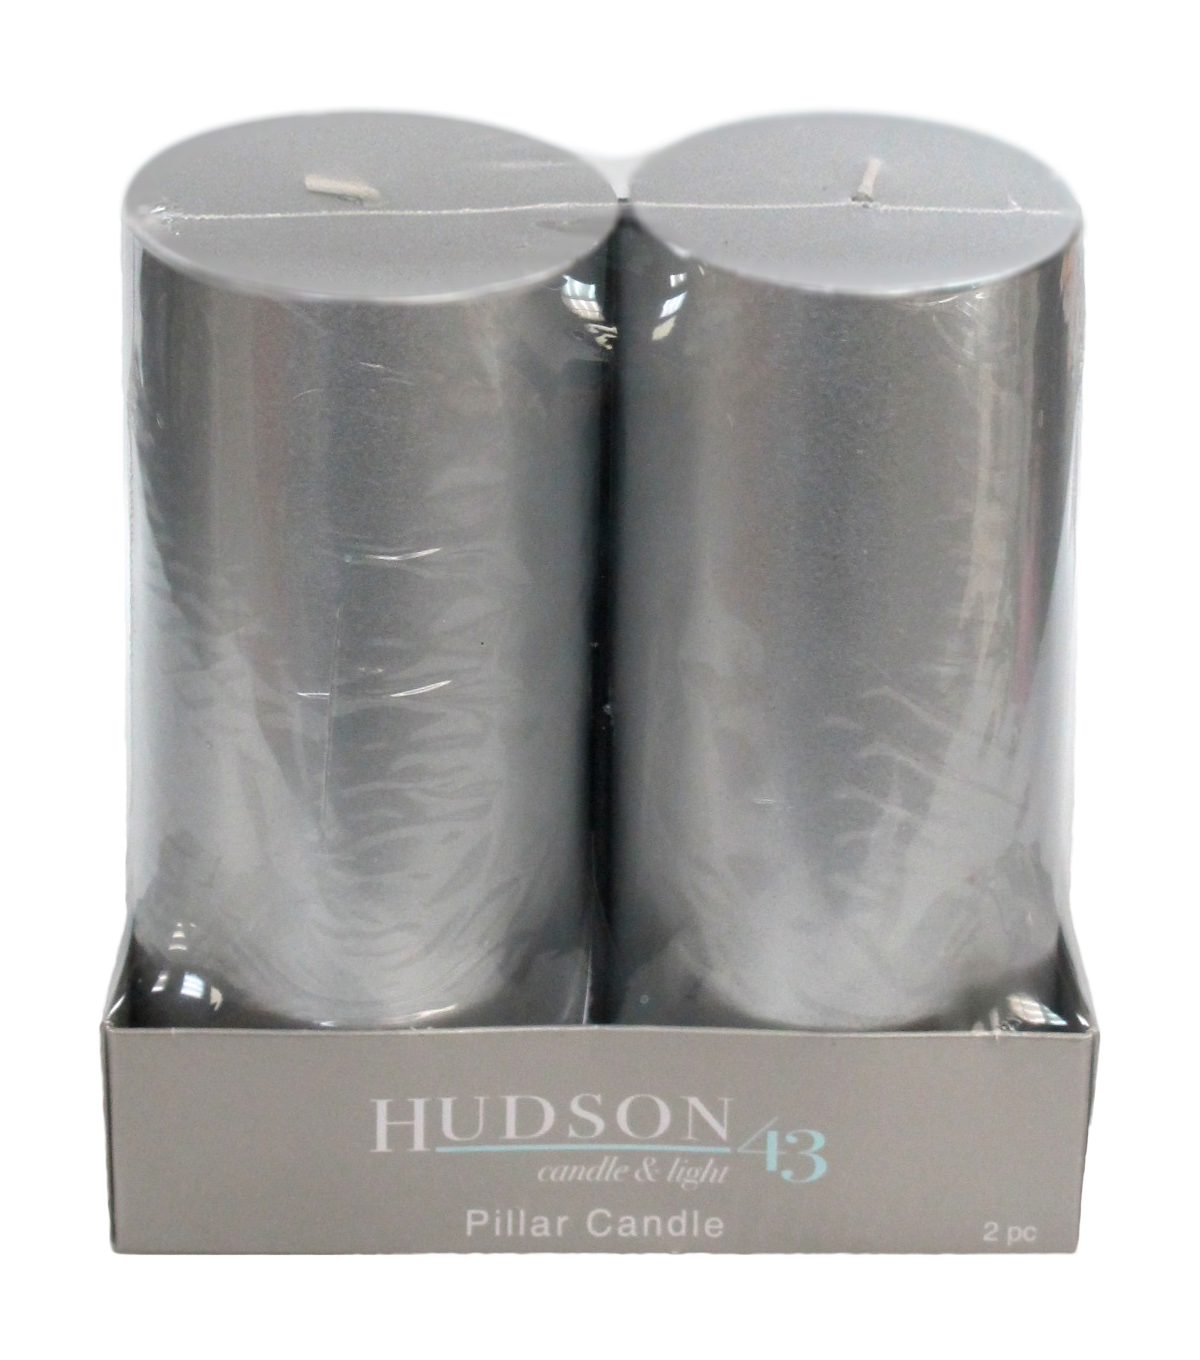 Hudson 43™ Candle & Light Collection 2  Pack 3X6 Silver Pillar